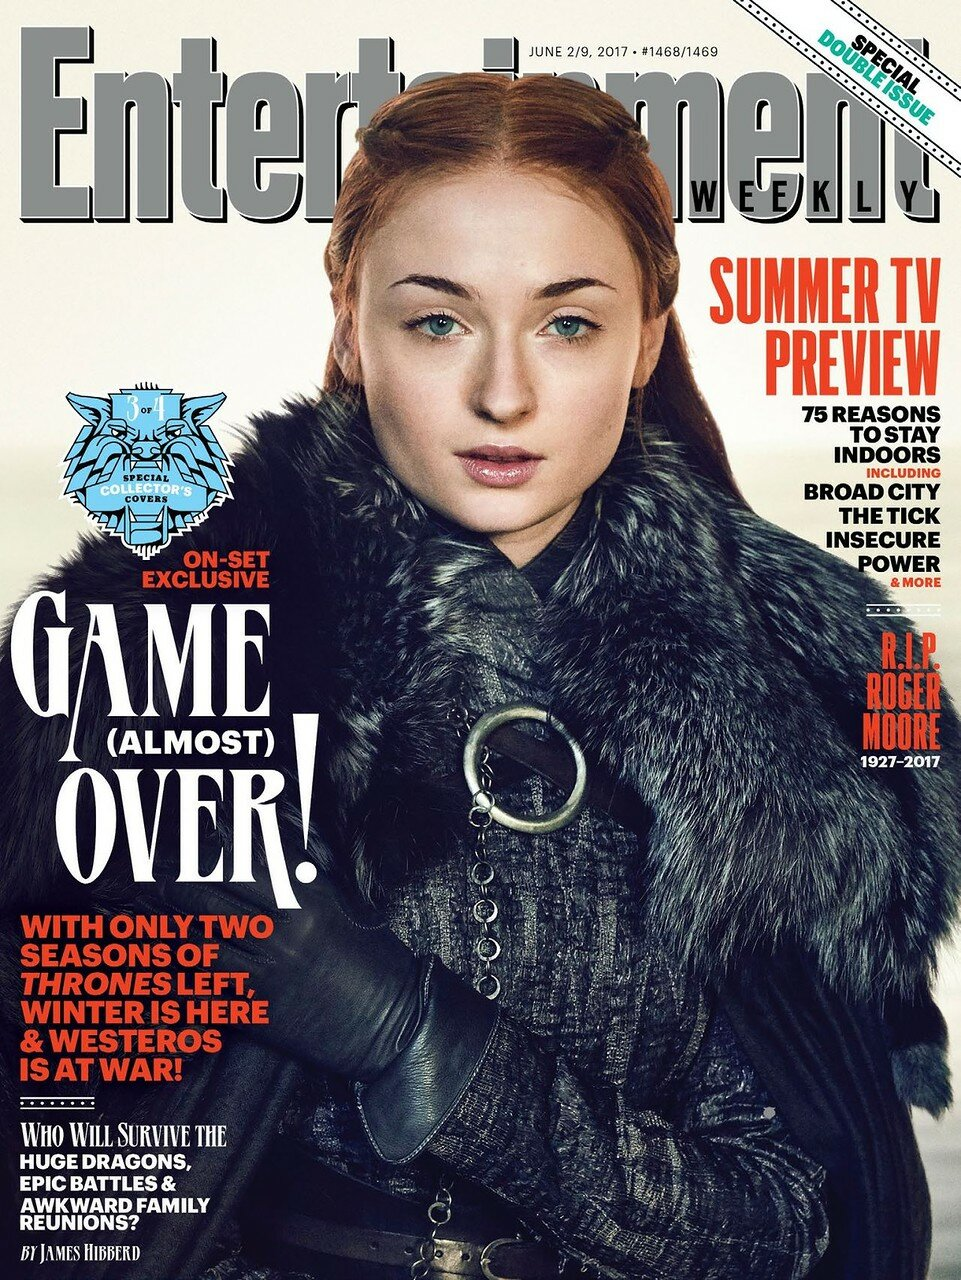 Фотосессия Sophie Turner & Maisie Williams ( EW Magazine, июнь 2017)